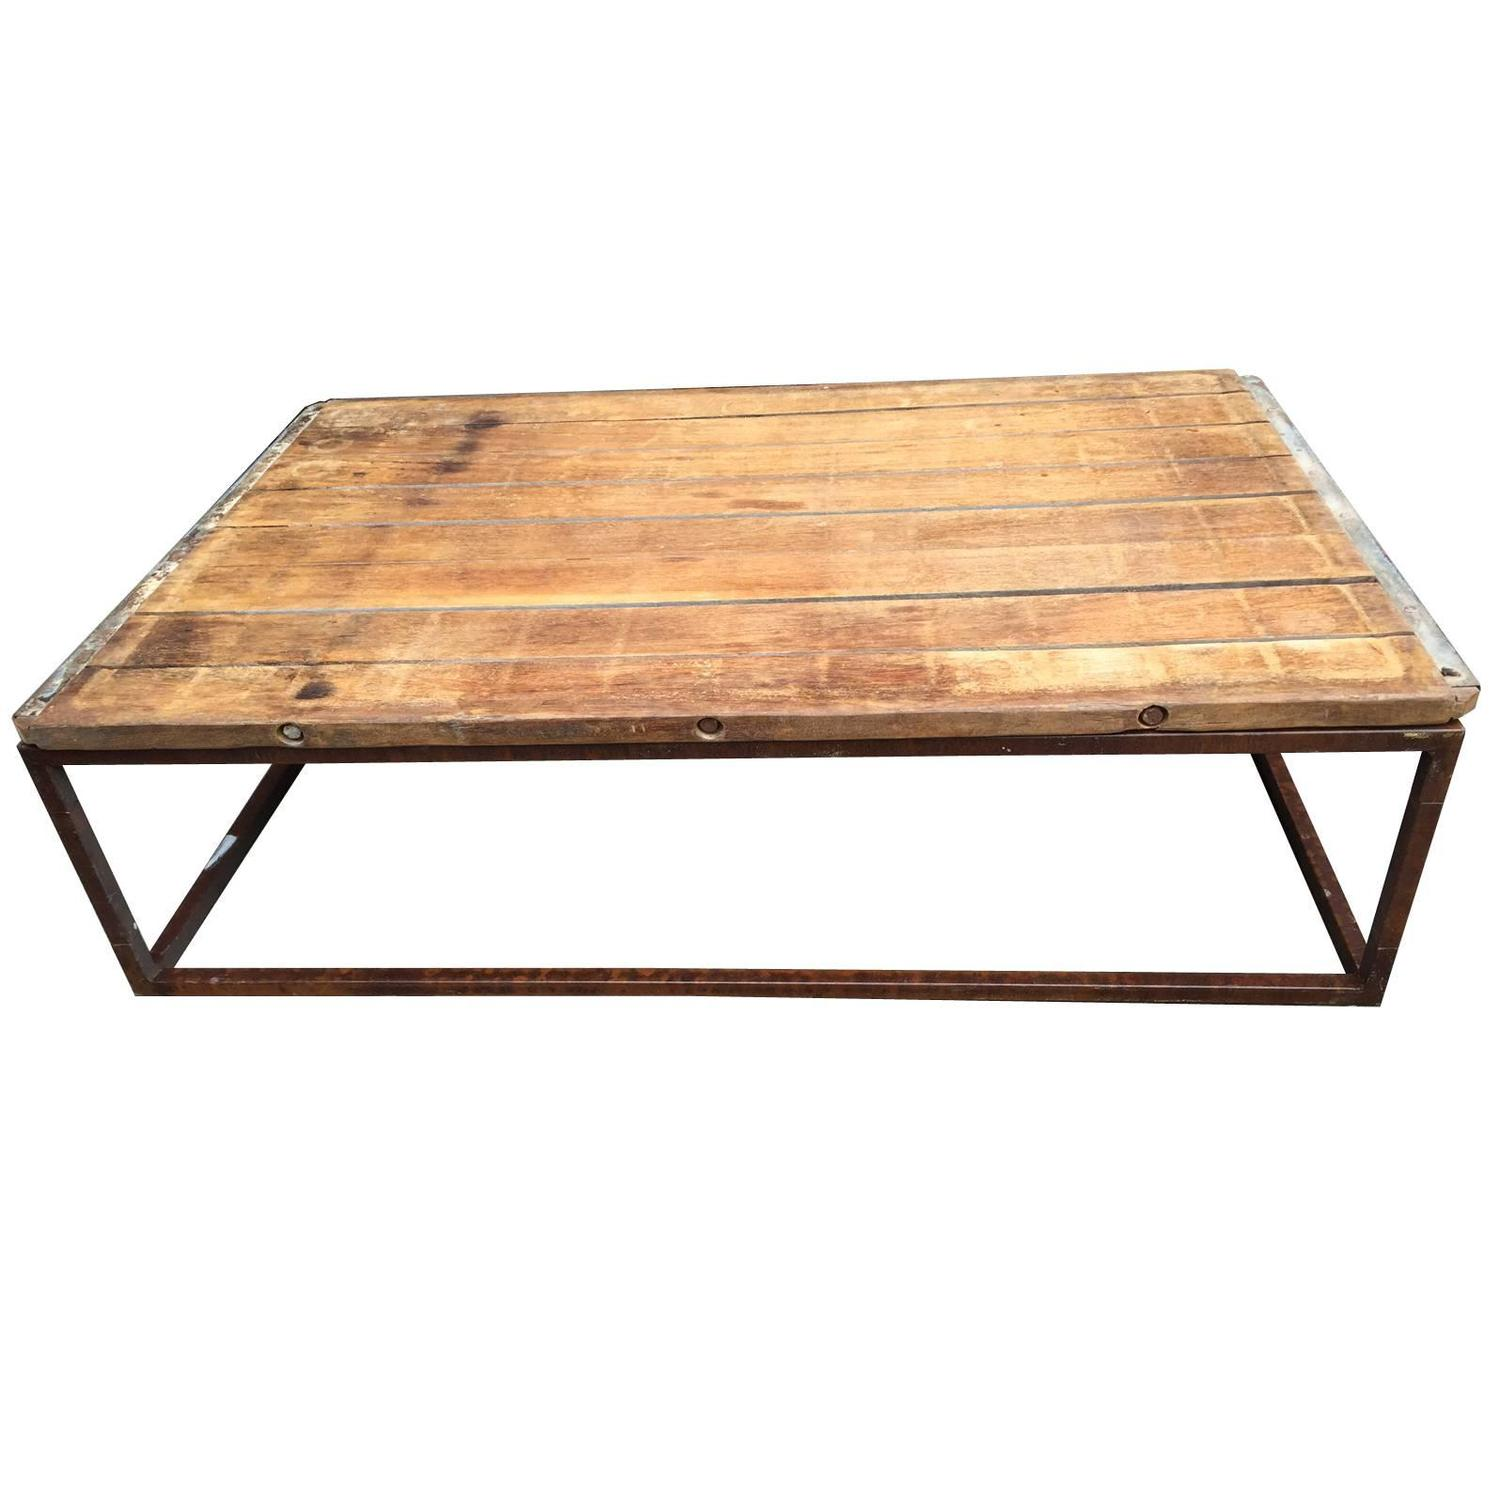 Marvelous photograph of Industrial Wood and Metal Coffee Table American circa 1920 For Sale  with #AF681C color and 1500x1500 pixels